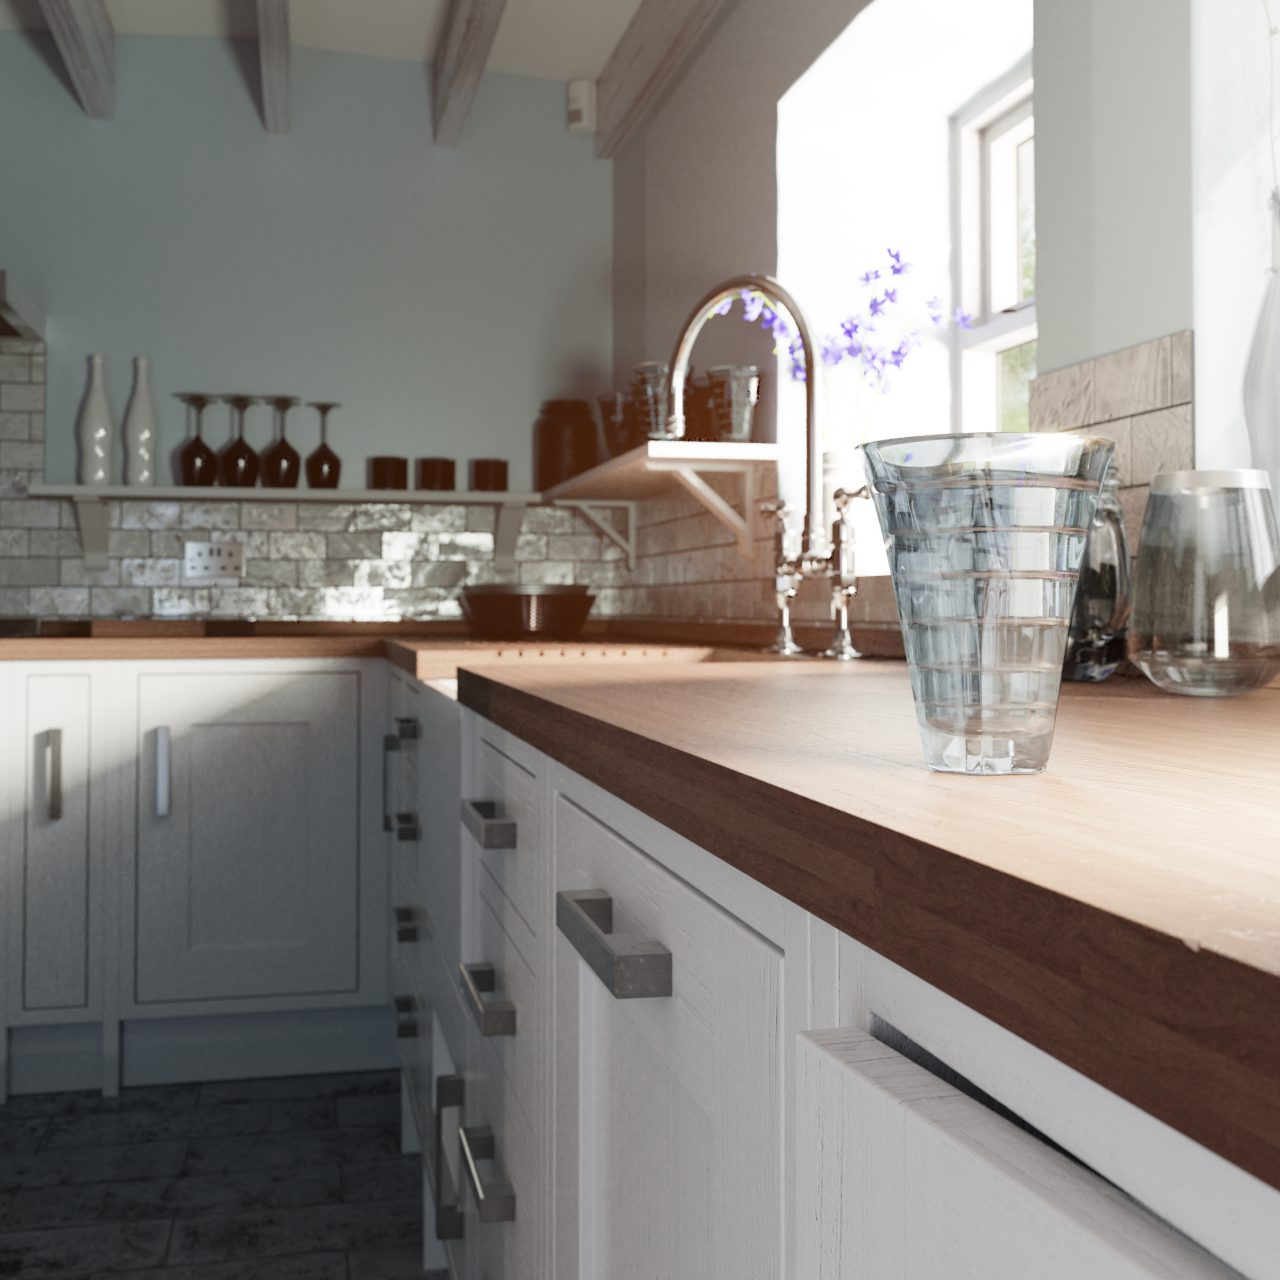 http://www.luxe-timber.co.uk/wp-content/uploads/2019/06/Image-15-1280x1280.jpg